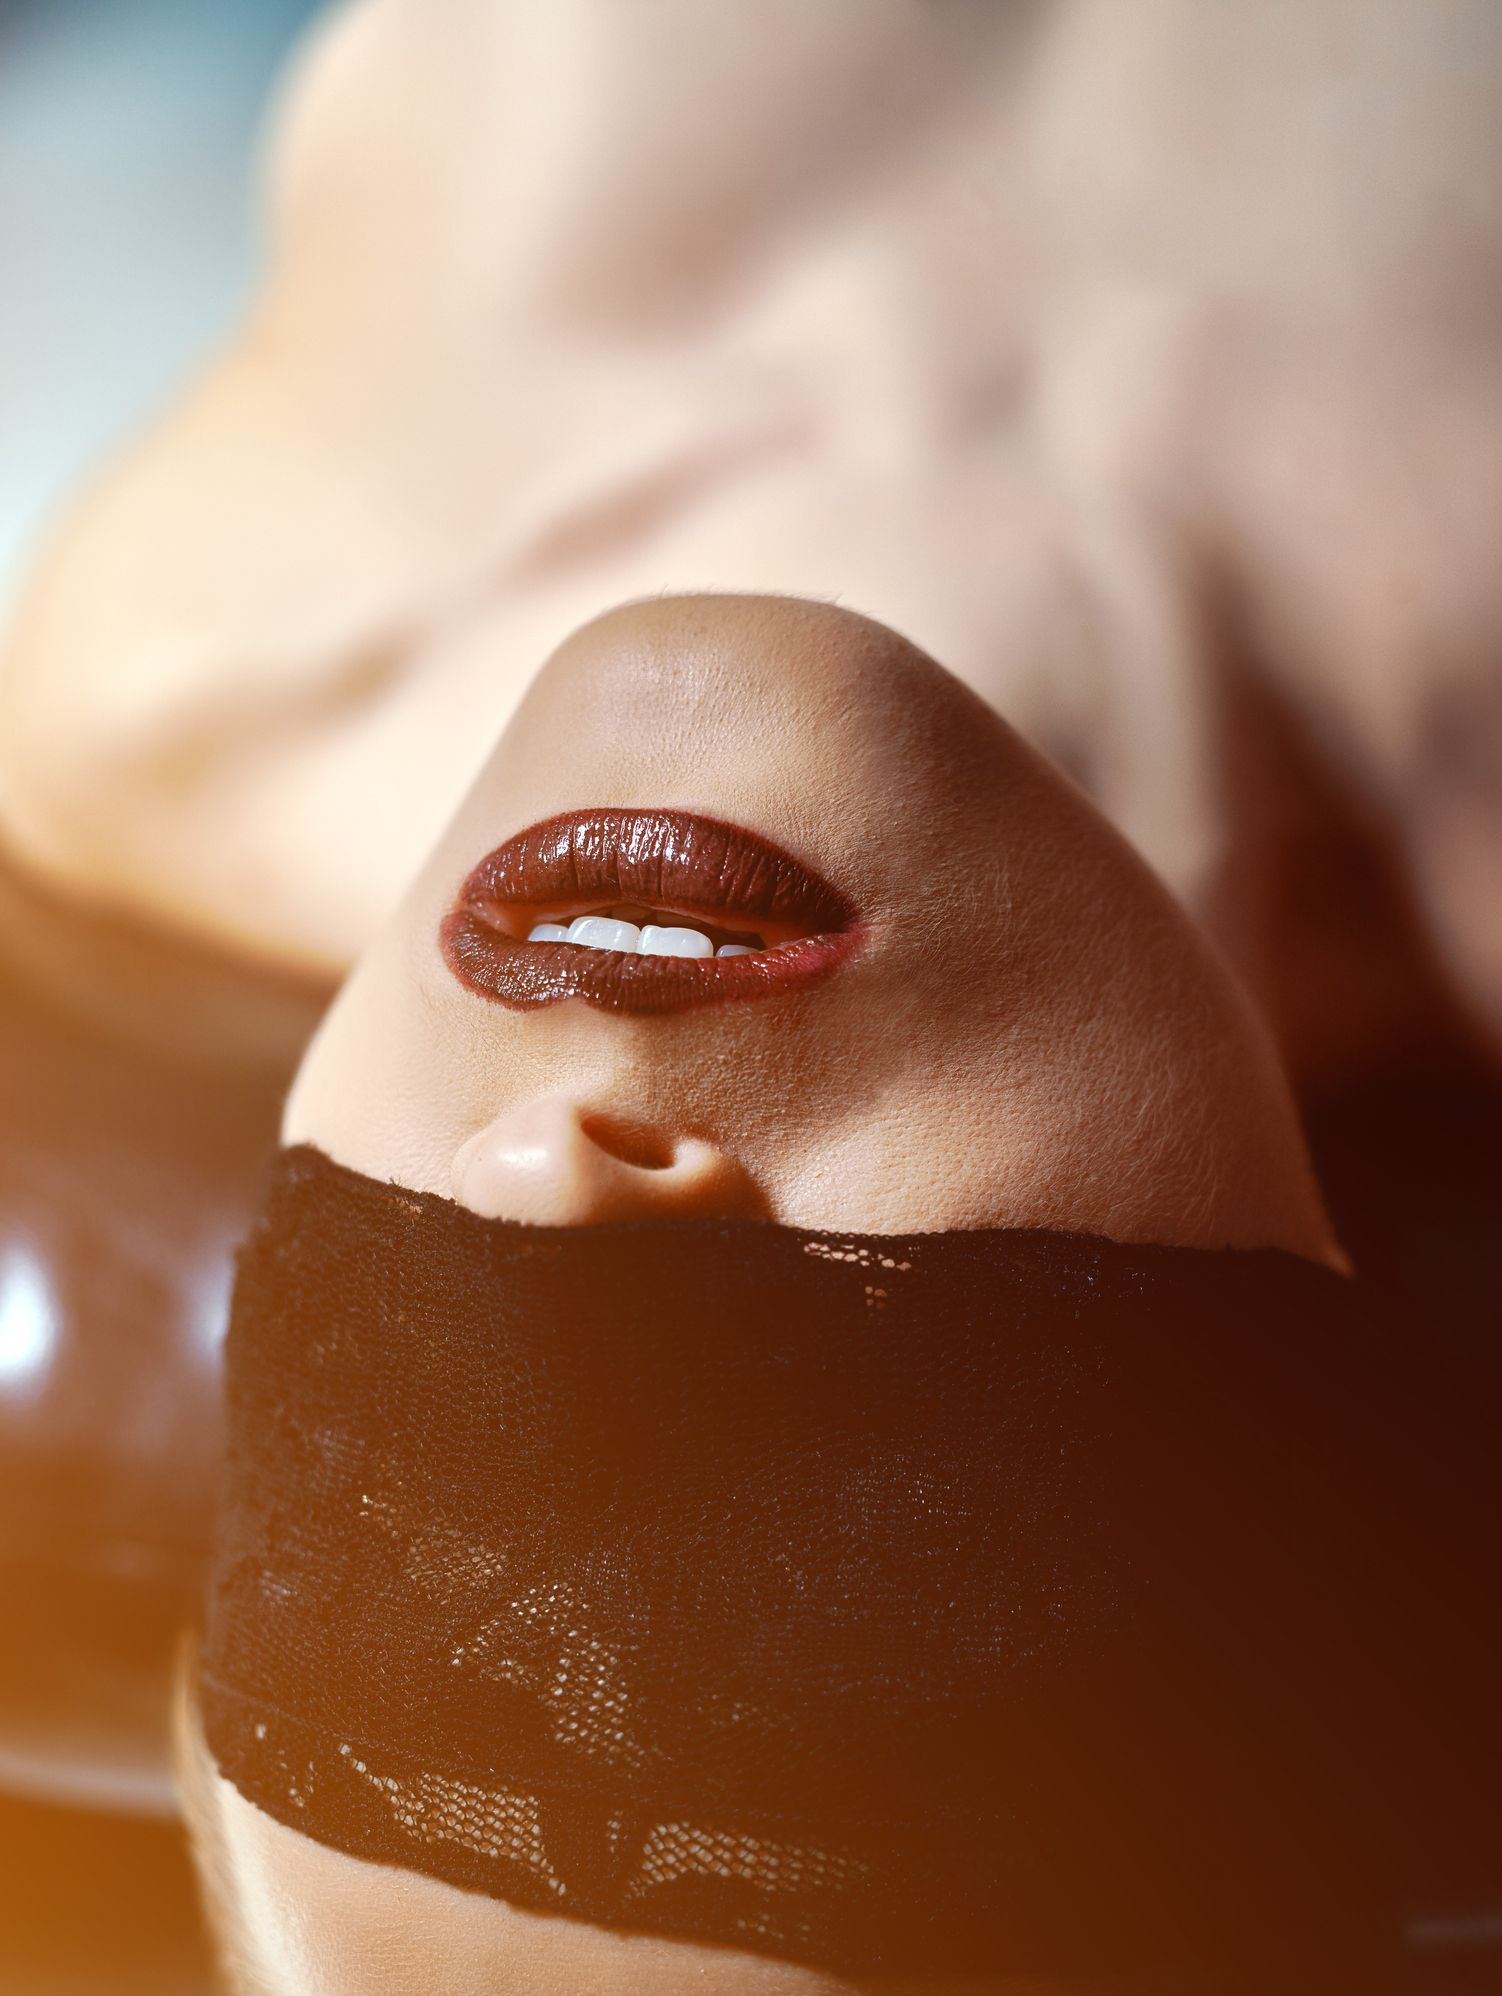 Wanna Have Kinkier Sex? These 10 Expert Tips Will Help You Get Started.